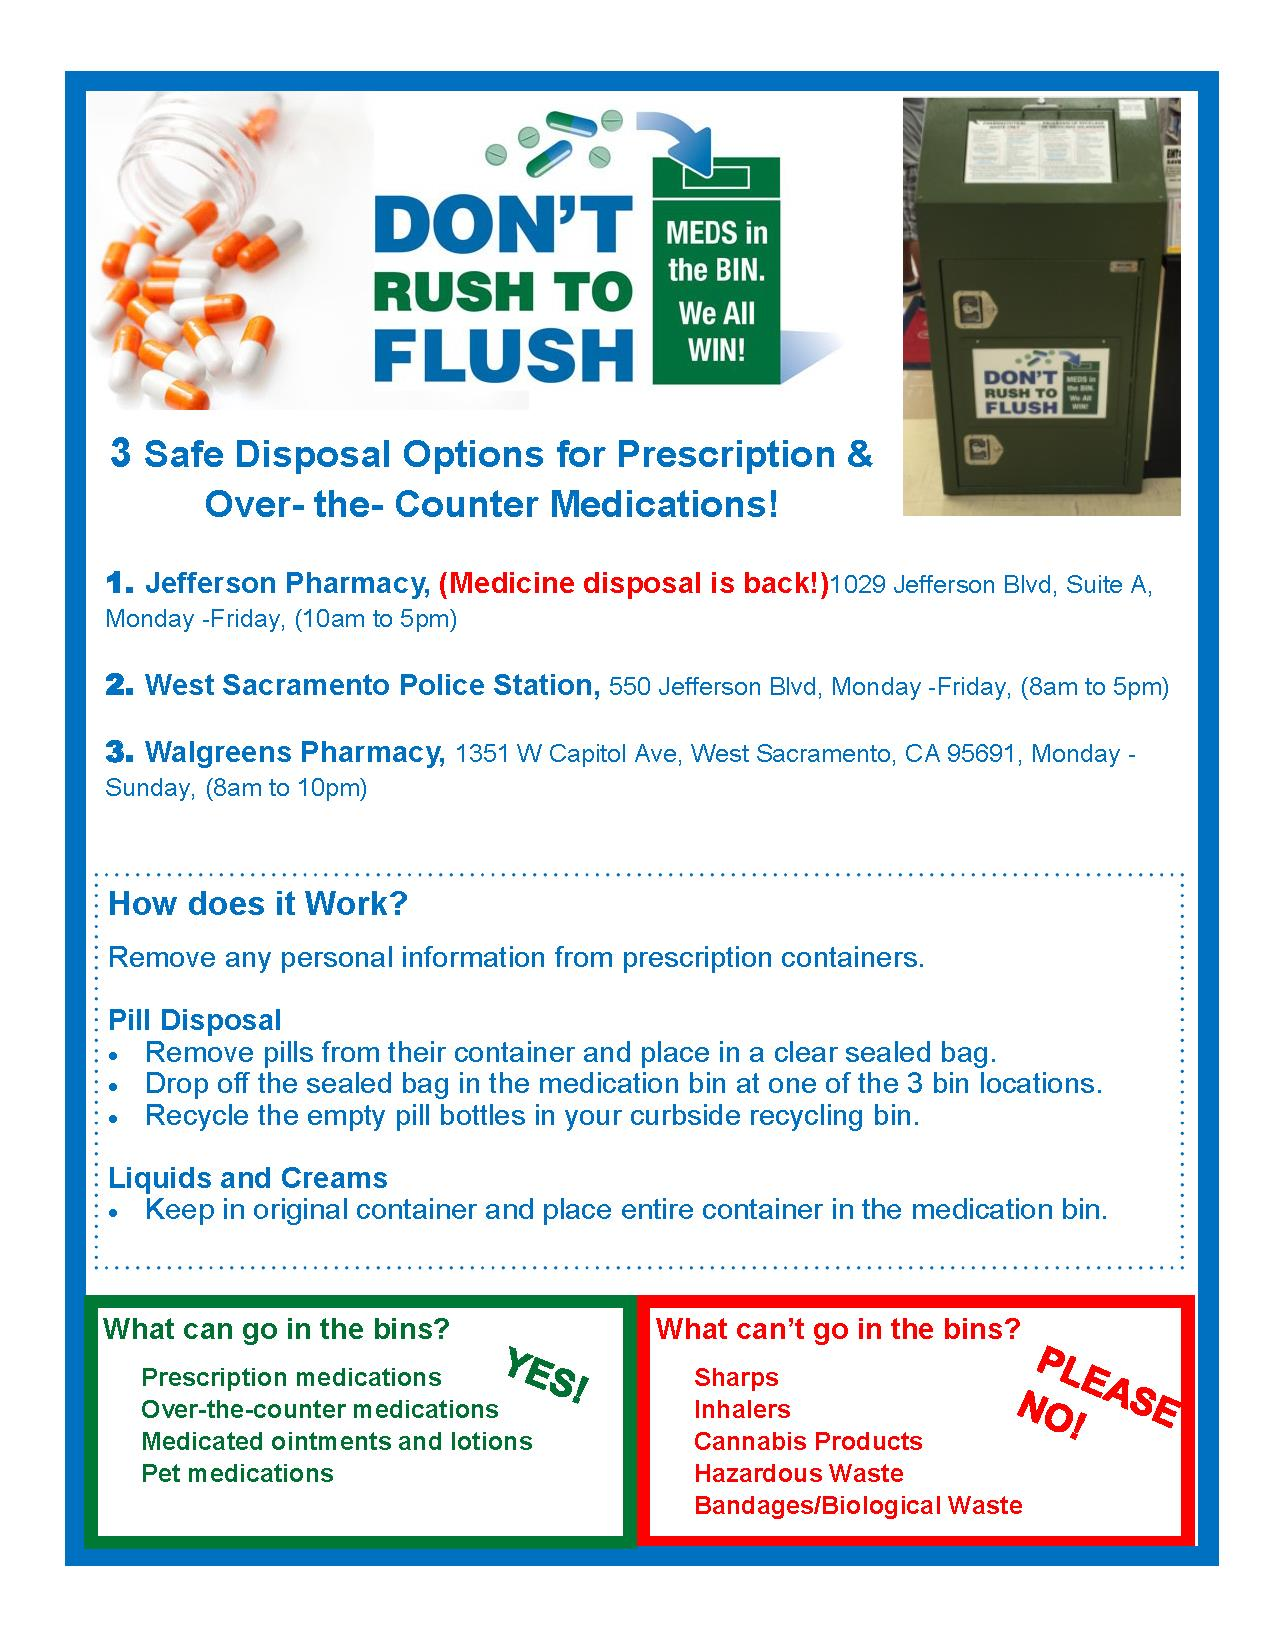 Don't Rush to Flush (7-17-18)